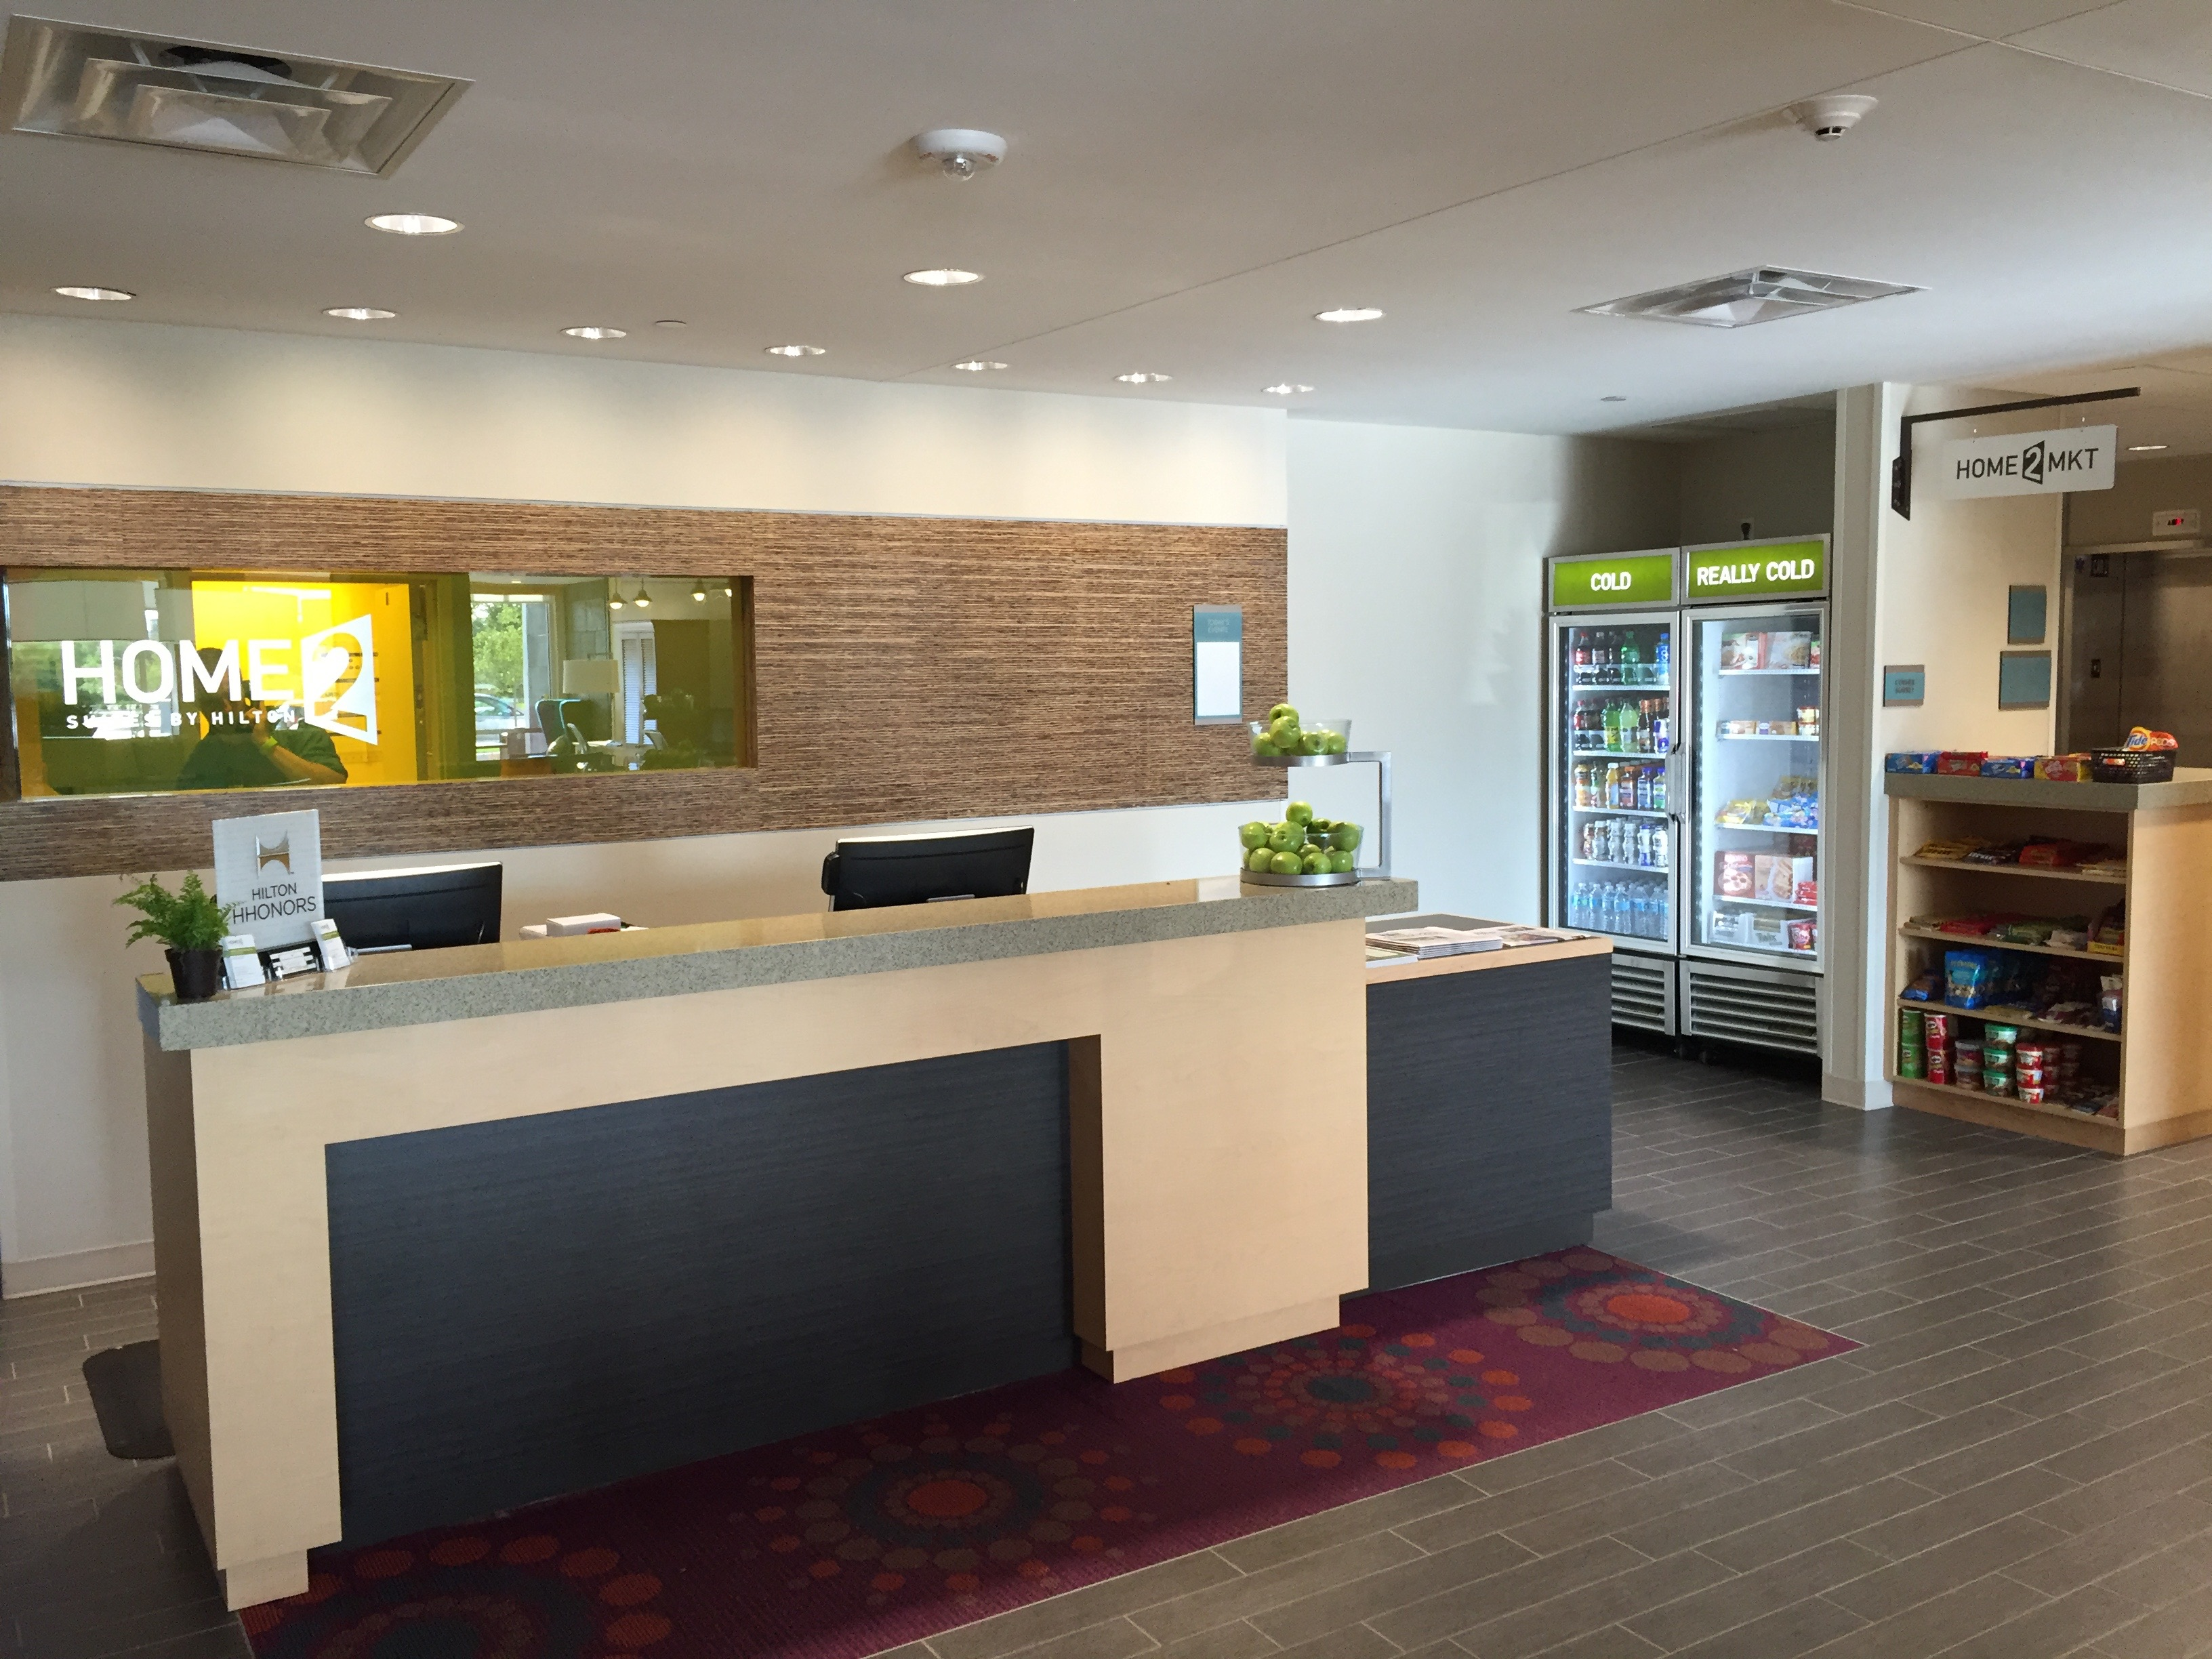 Home 2 Suites by Hilton Roseville MN